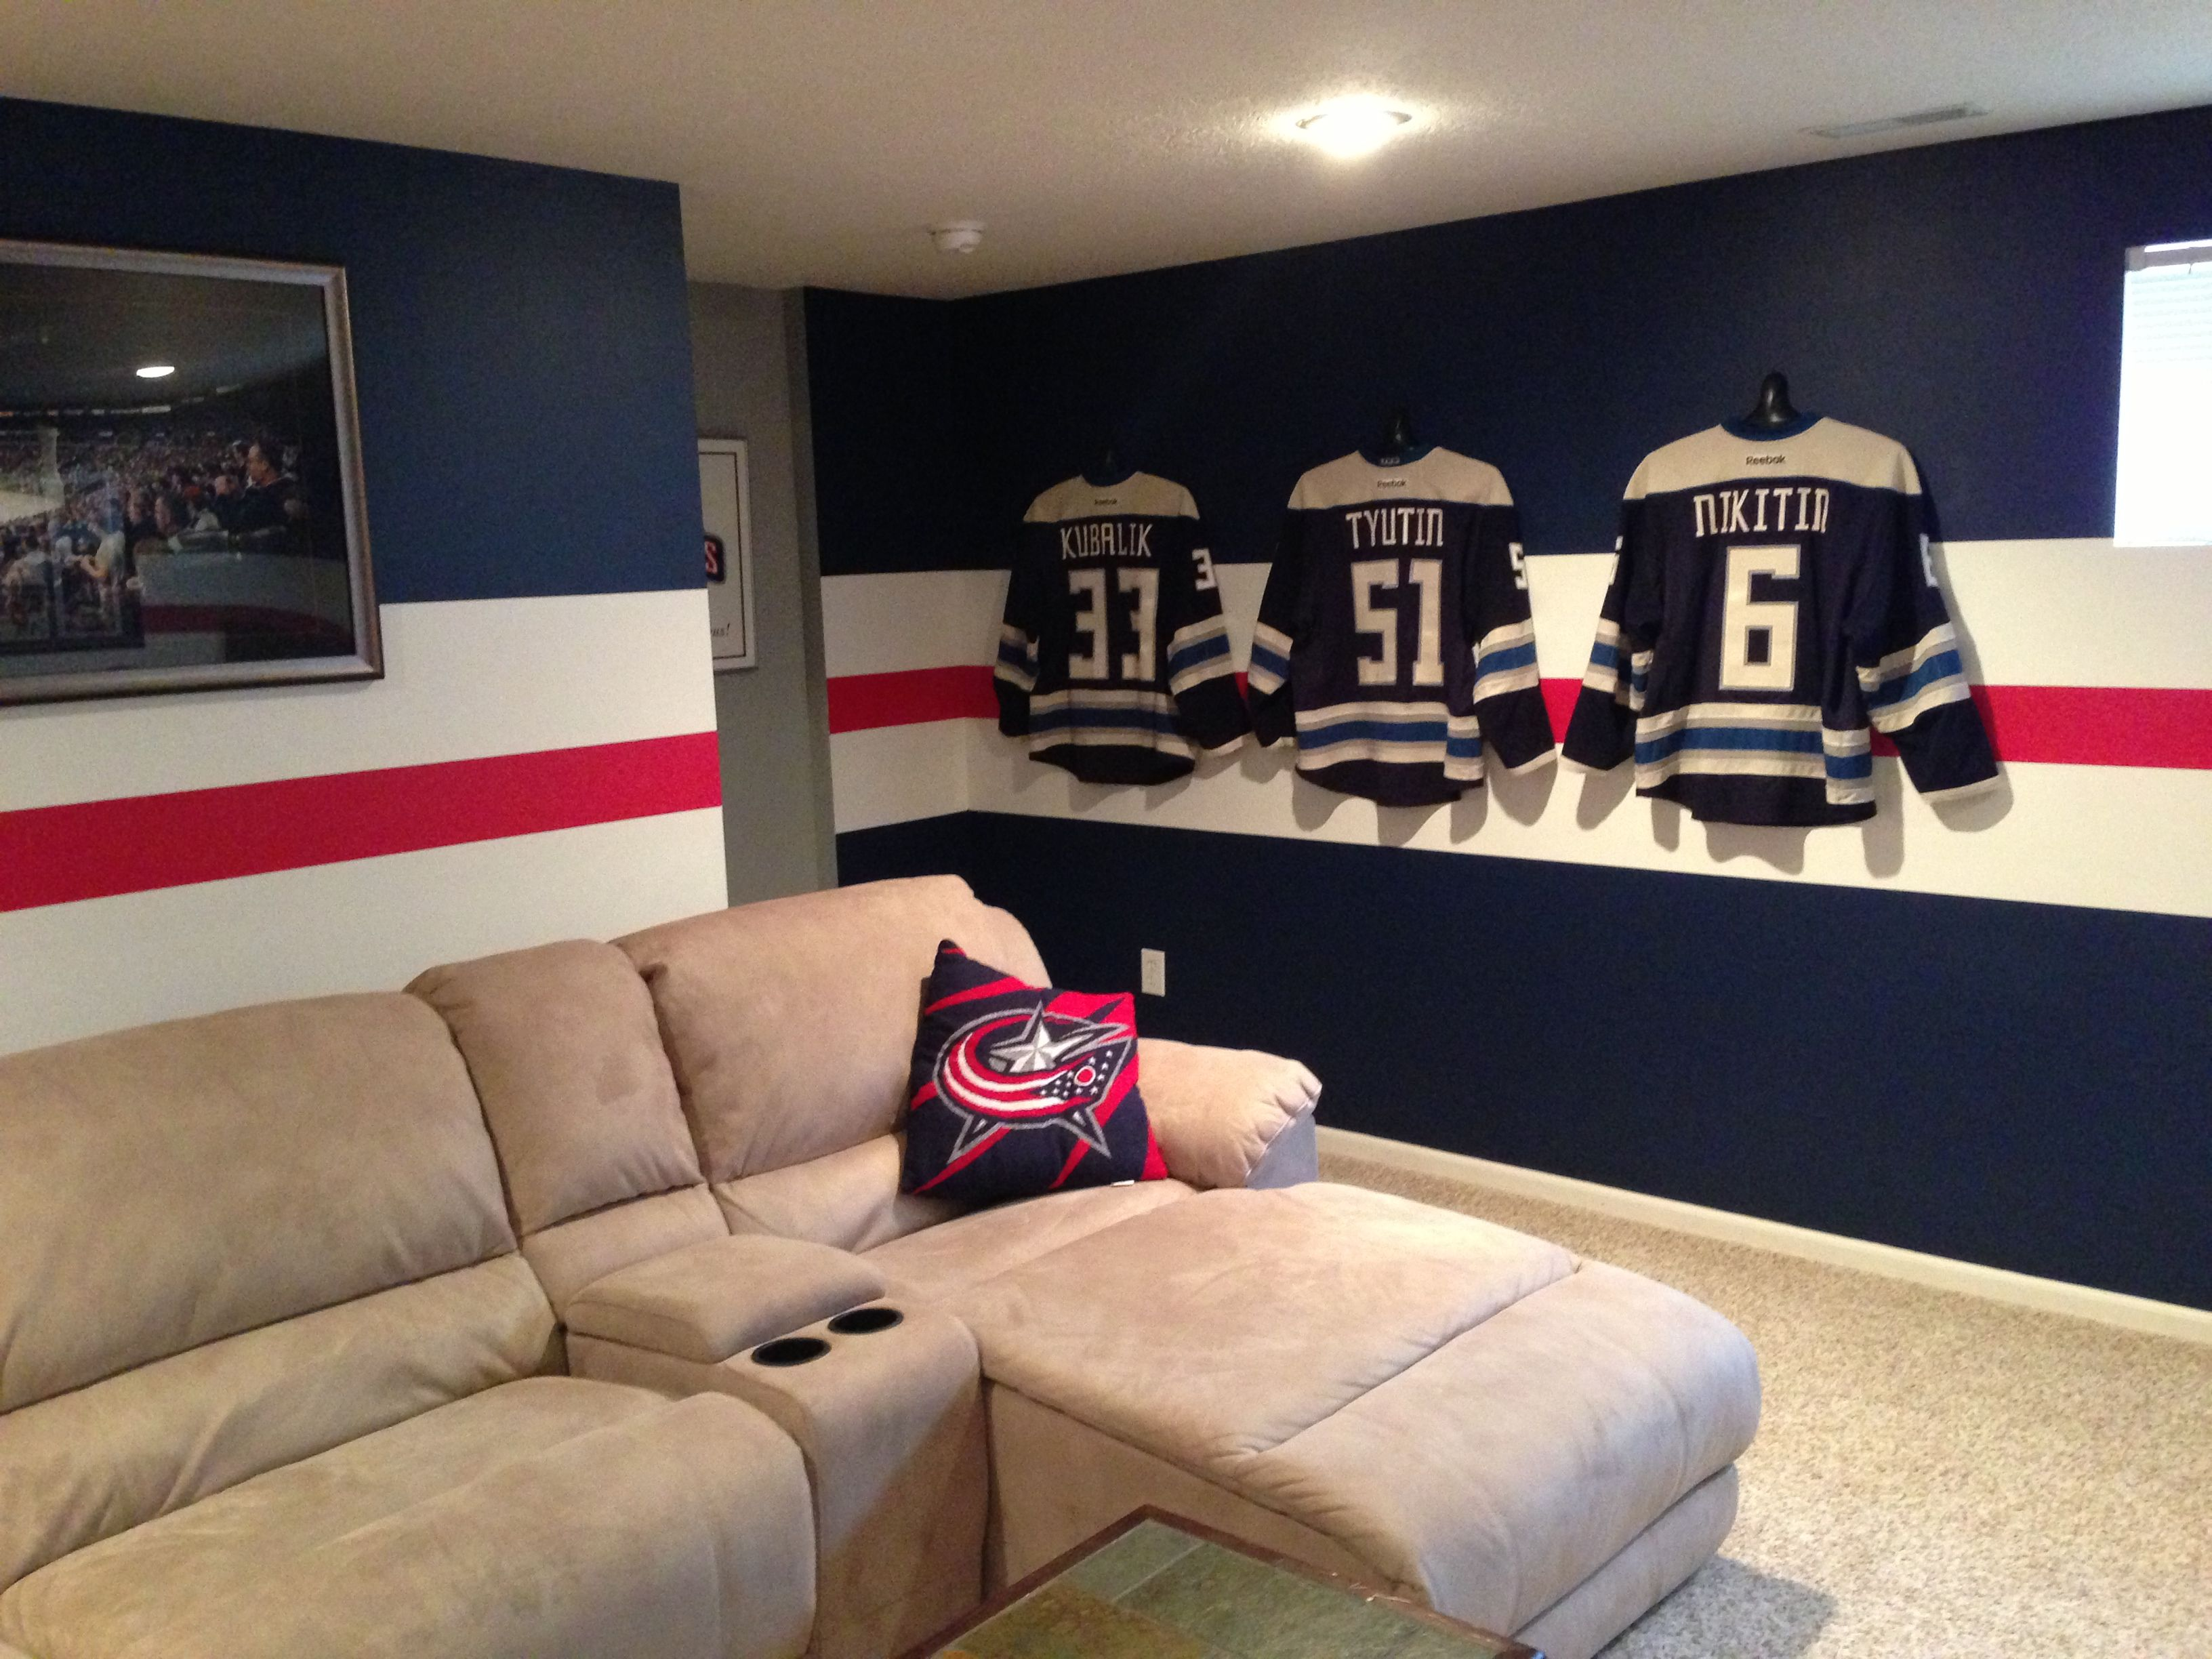 See Customer Photos Of Their Sports Jersey Collection Hanging On Their Walls  With JerseyGenius!